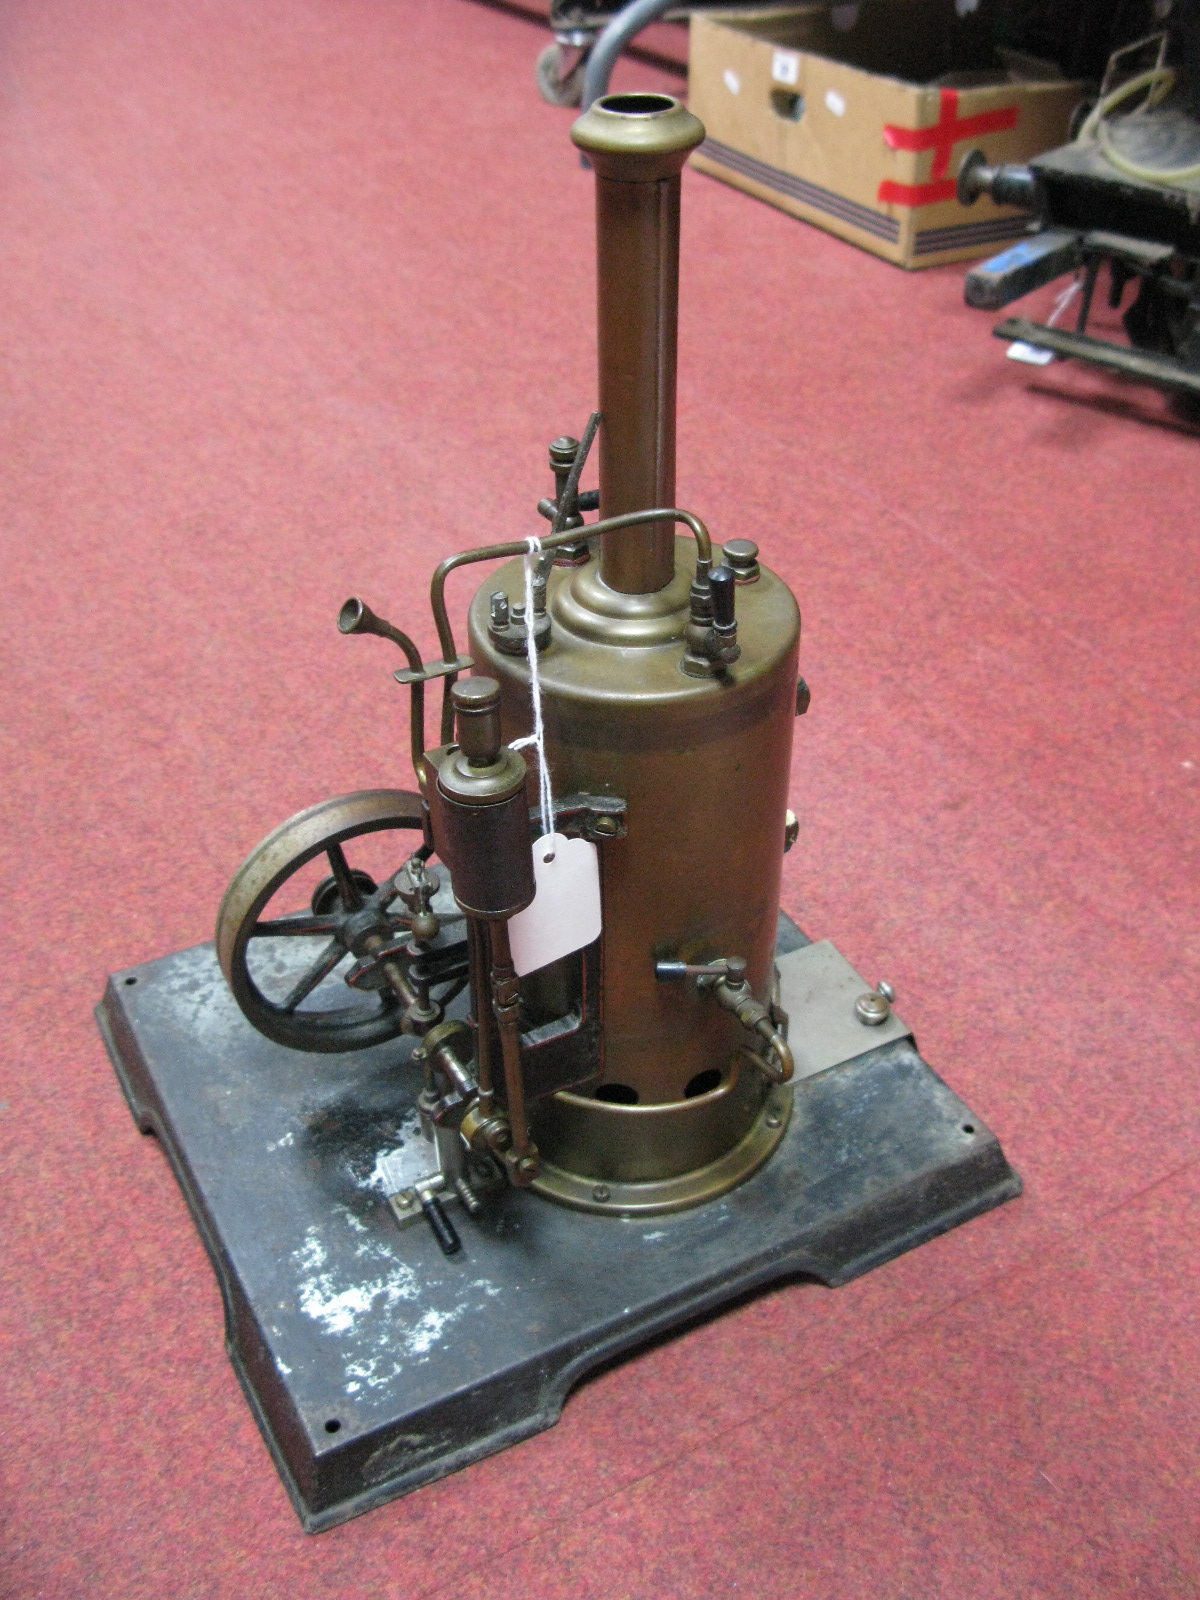 Lot 18 - An Early XX Century Large Vertical Steam Boiler And Engine, by Marklin of Germany, single cylinder